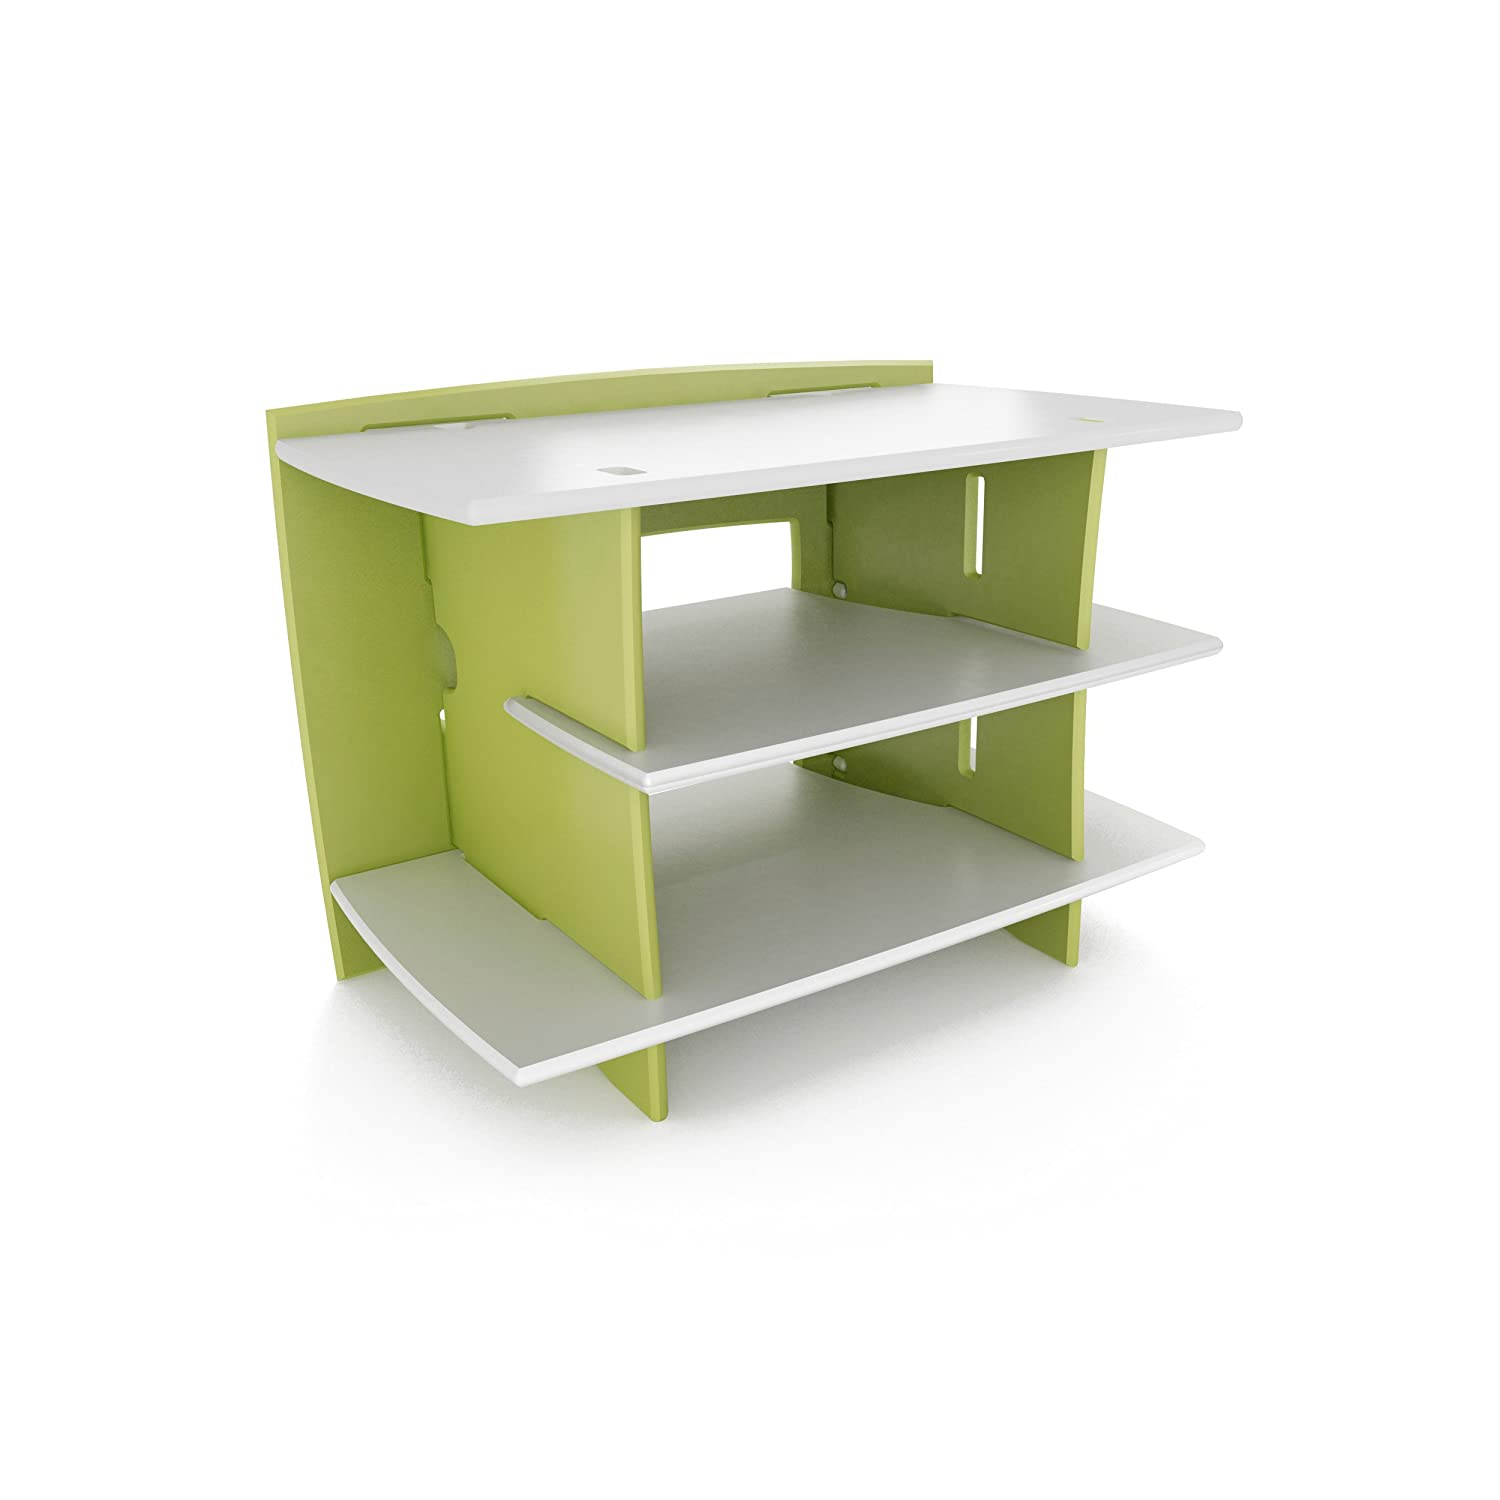 Amazon.com: Legaré Kids Furniture Frog Series Collection, No Tools Assembly  Gaming Center Stand, Lime Green And White: Kitchen U0026 Dining